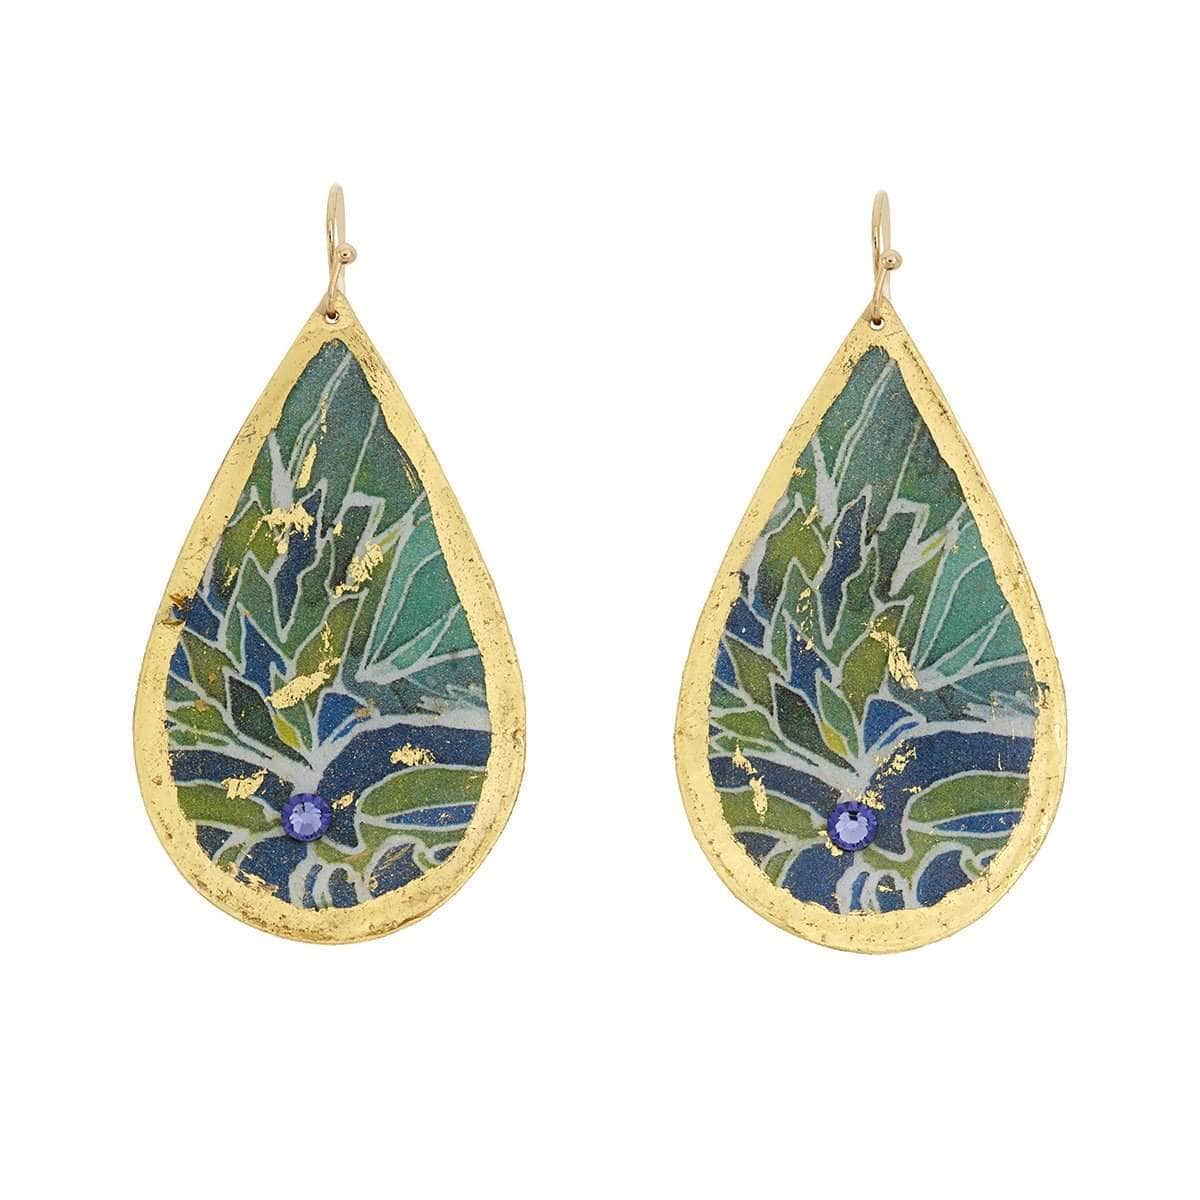 Seychelles Gold Teardrop Earrings - MG439-Evocateur-Renee Taylor Gallery